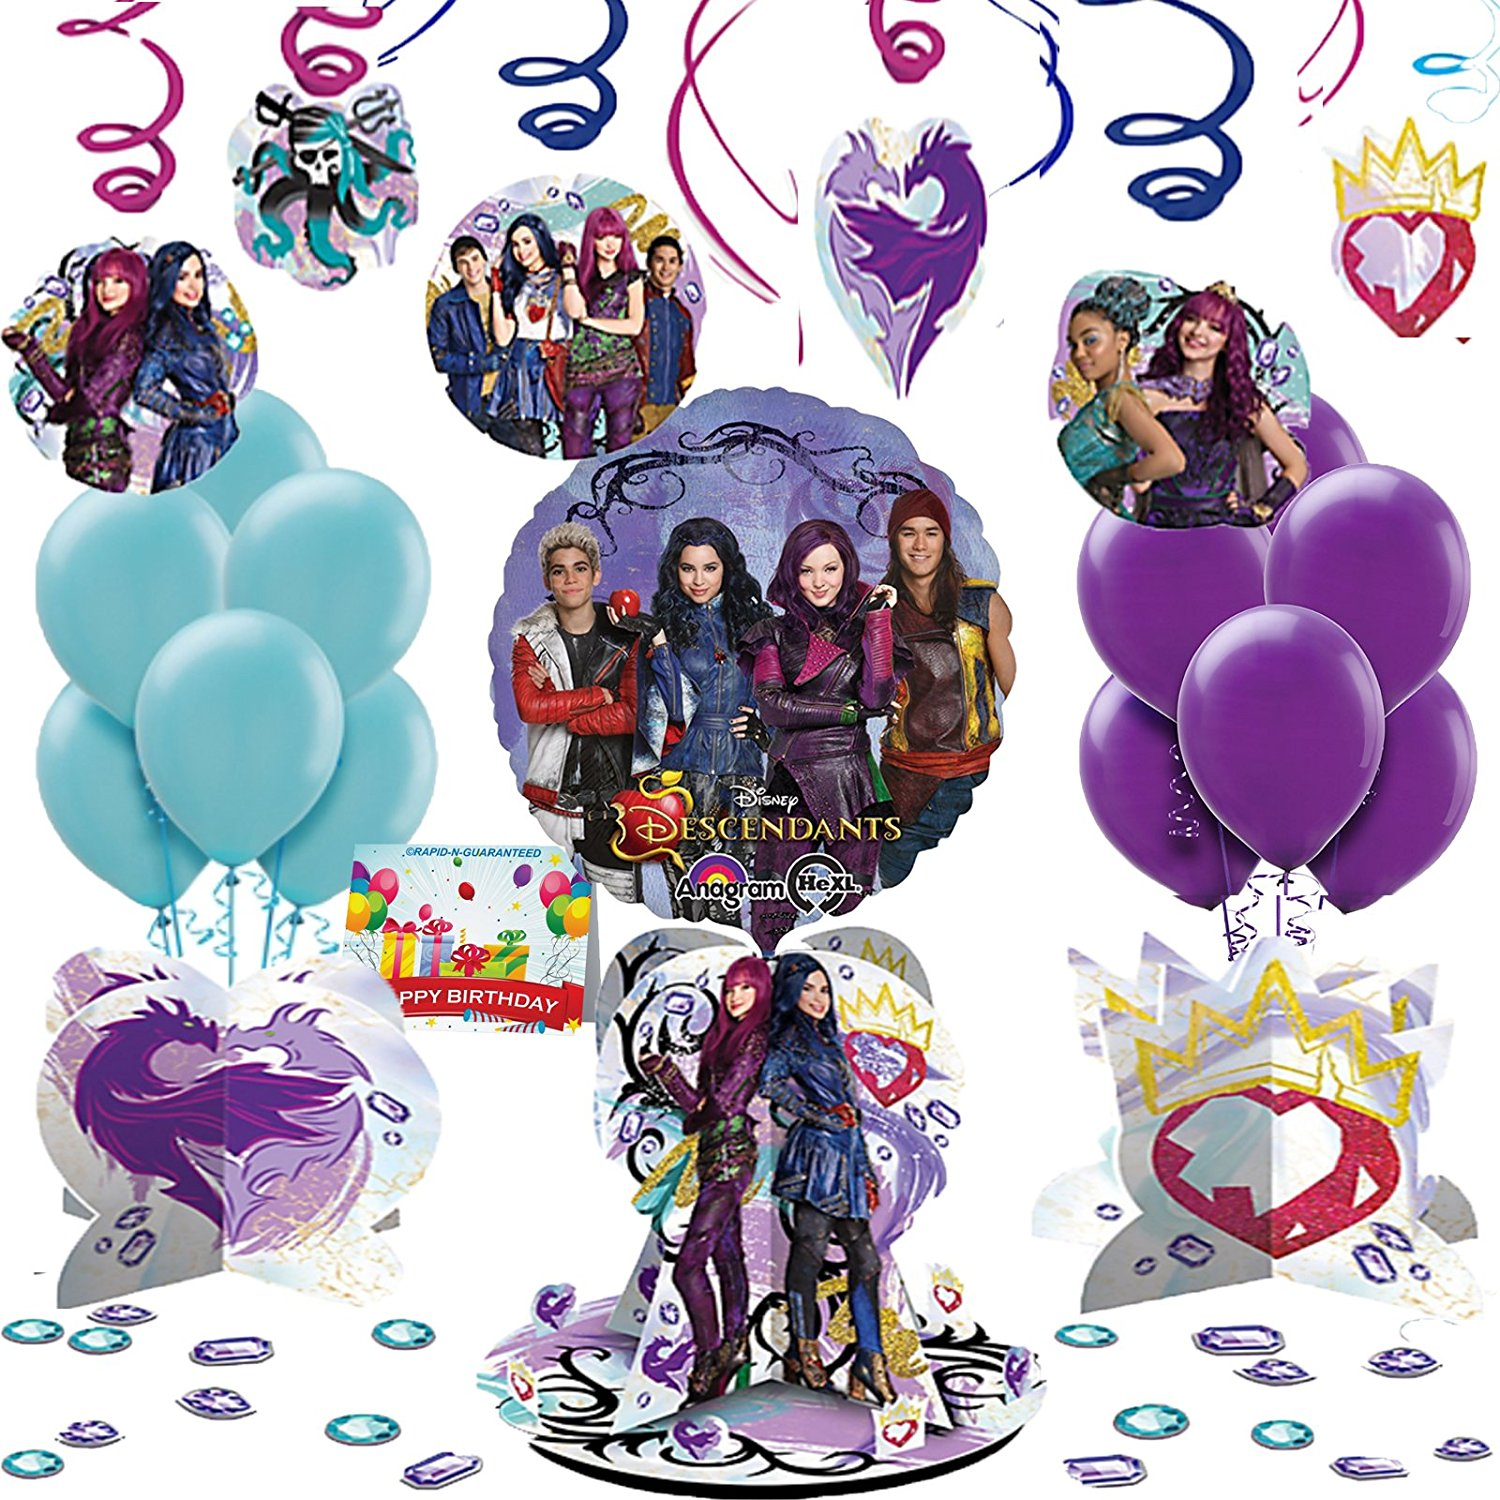 Please Plan My Party Disney Descendants 2 Party Ideas